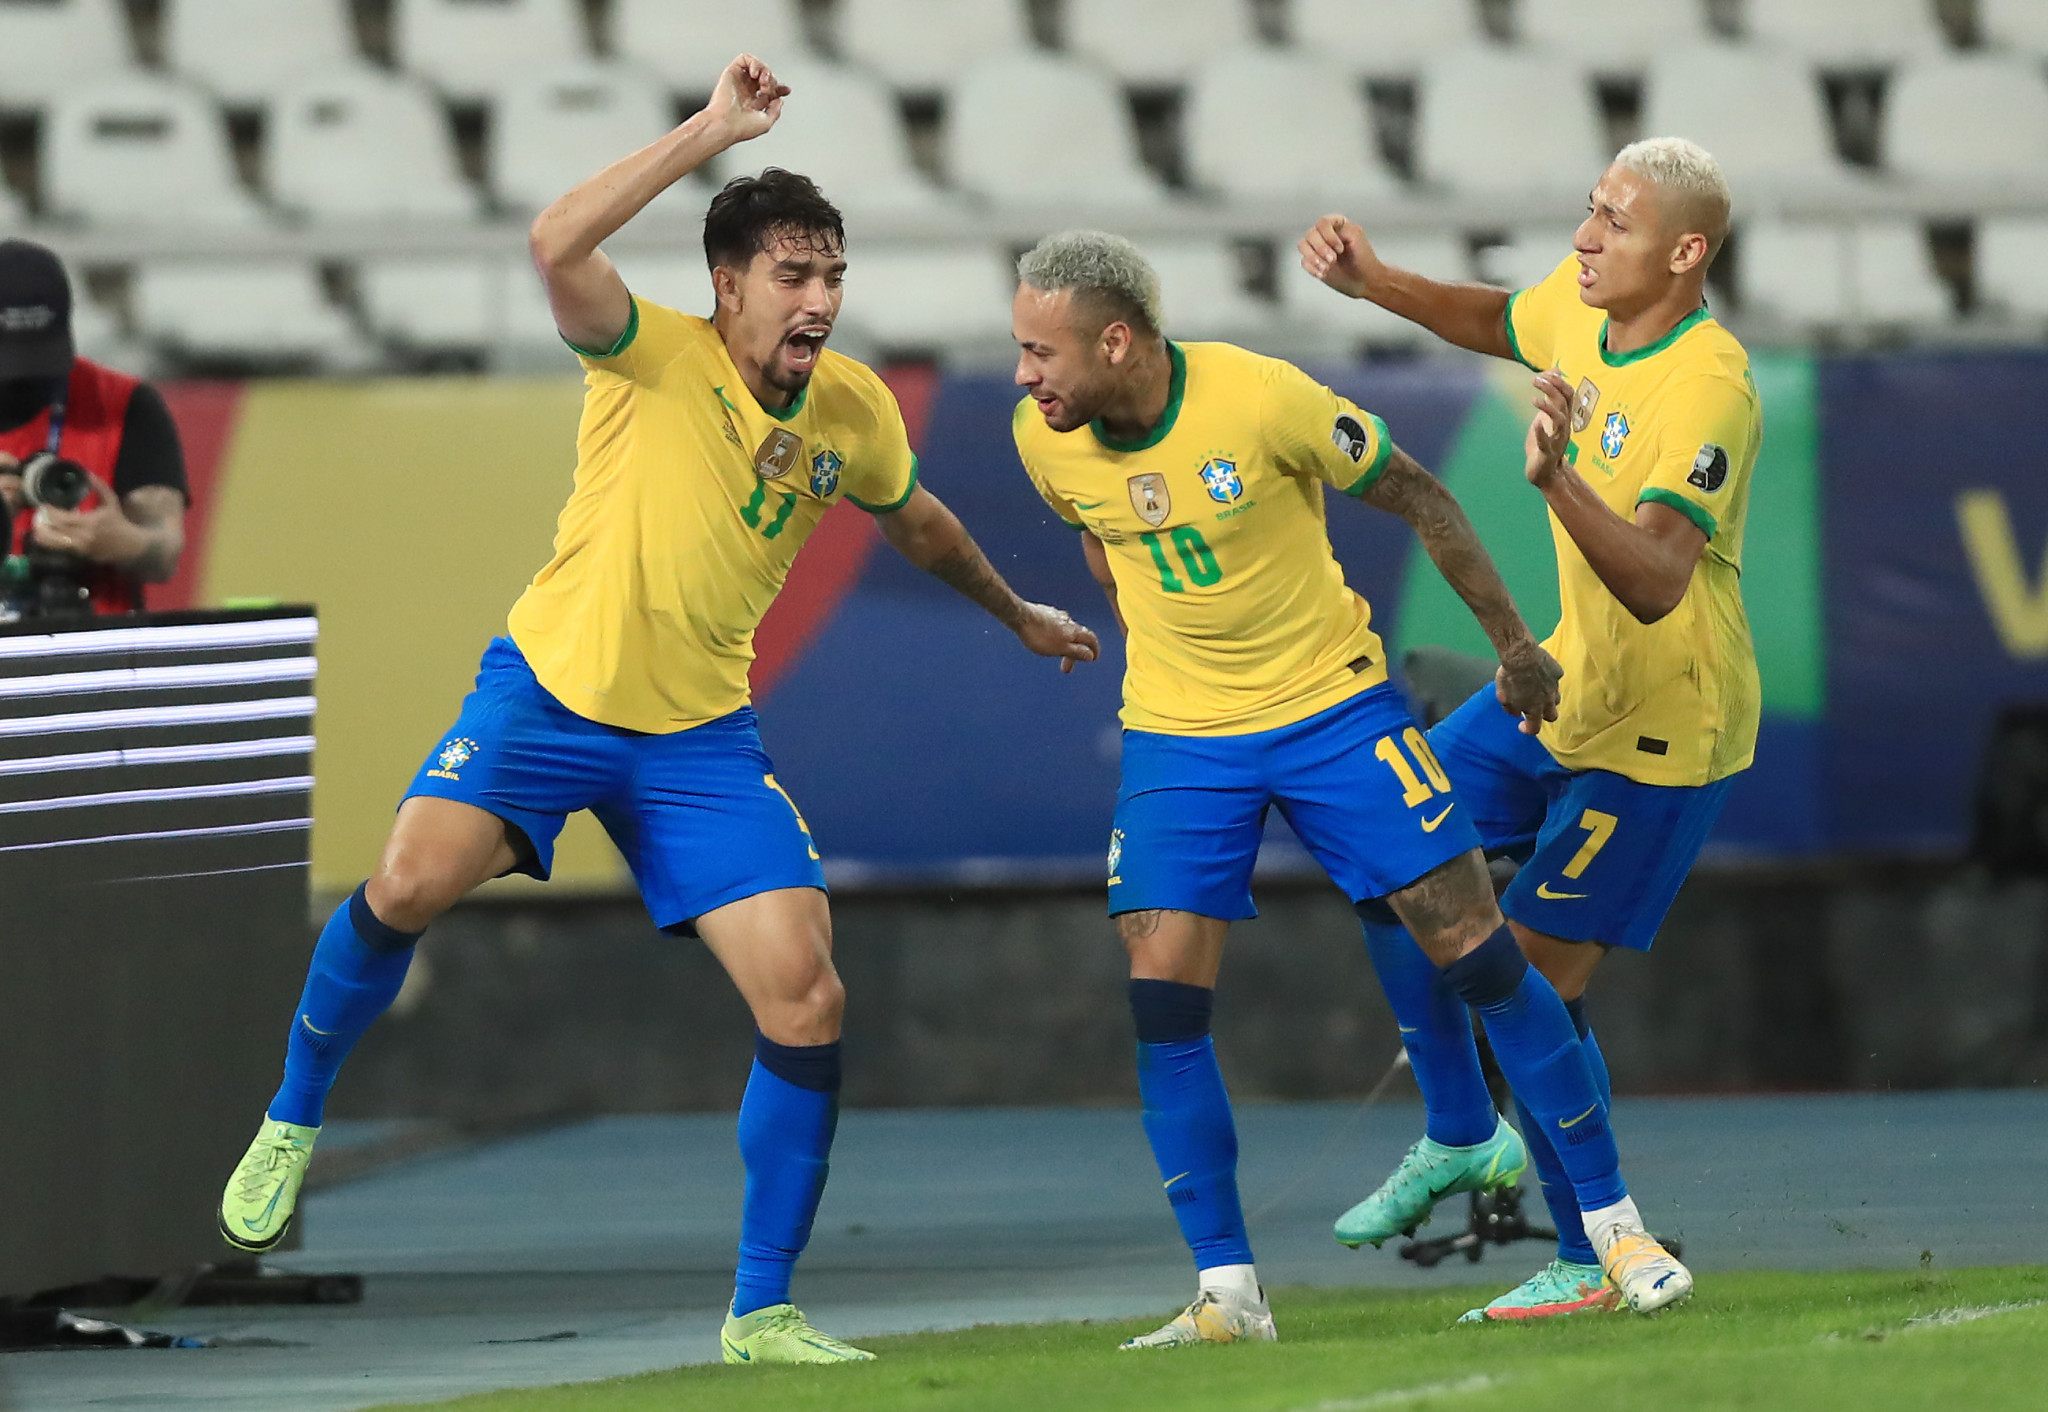 Brazil's Lucas Paquetá celebrates after scoring what proved to be the winner against Peru ©Getty Images